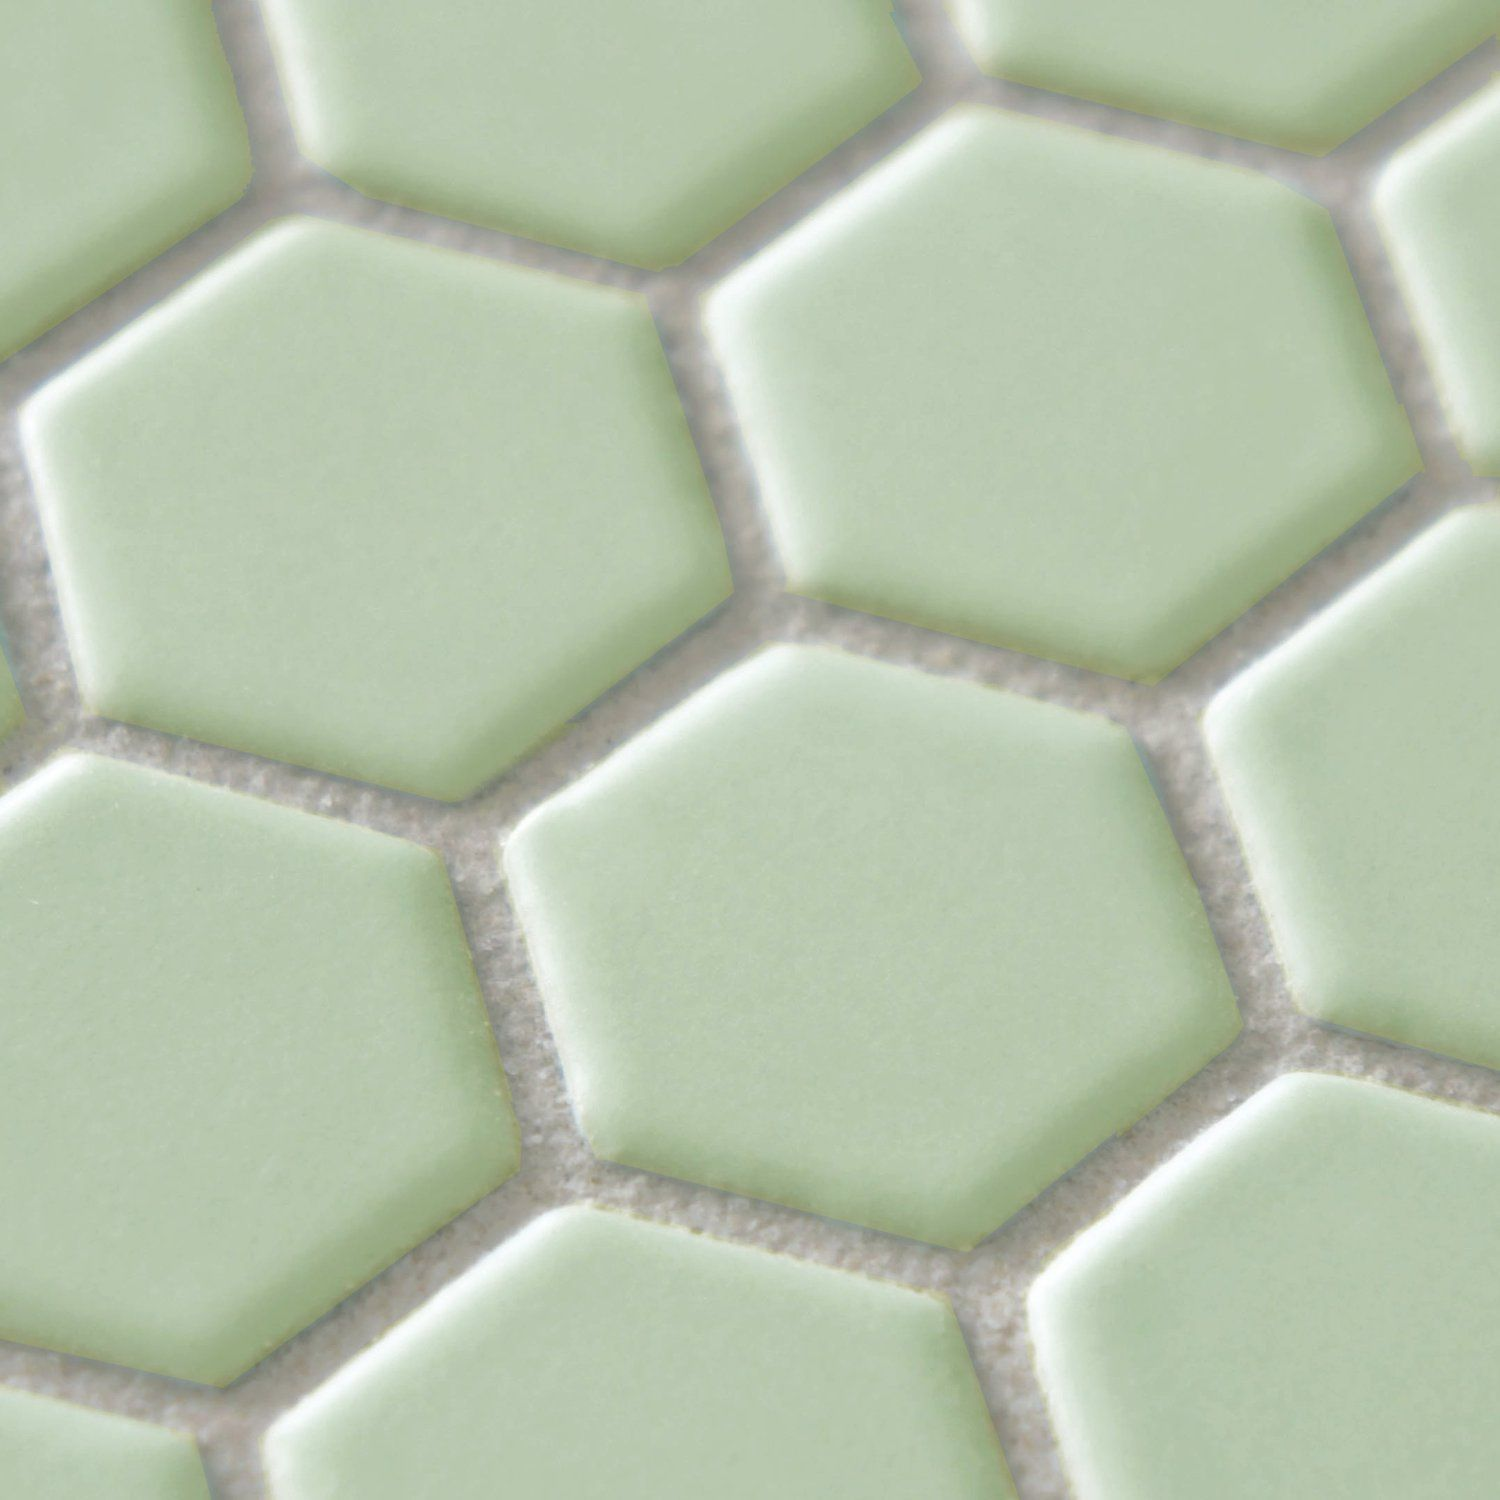 Retro Hex Matte Light Green 10 1 4 X 11 3 4 Inch Porcelain Floor Wall Tile 10 Pcs 8 4 Sq Ft Per Case Porcelain Mosaic Floor And Wall Tile Mosaic Flooring